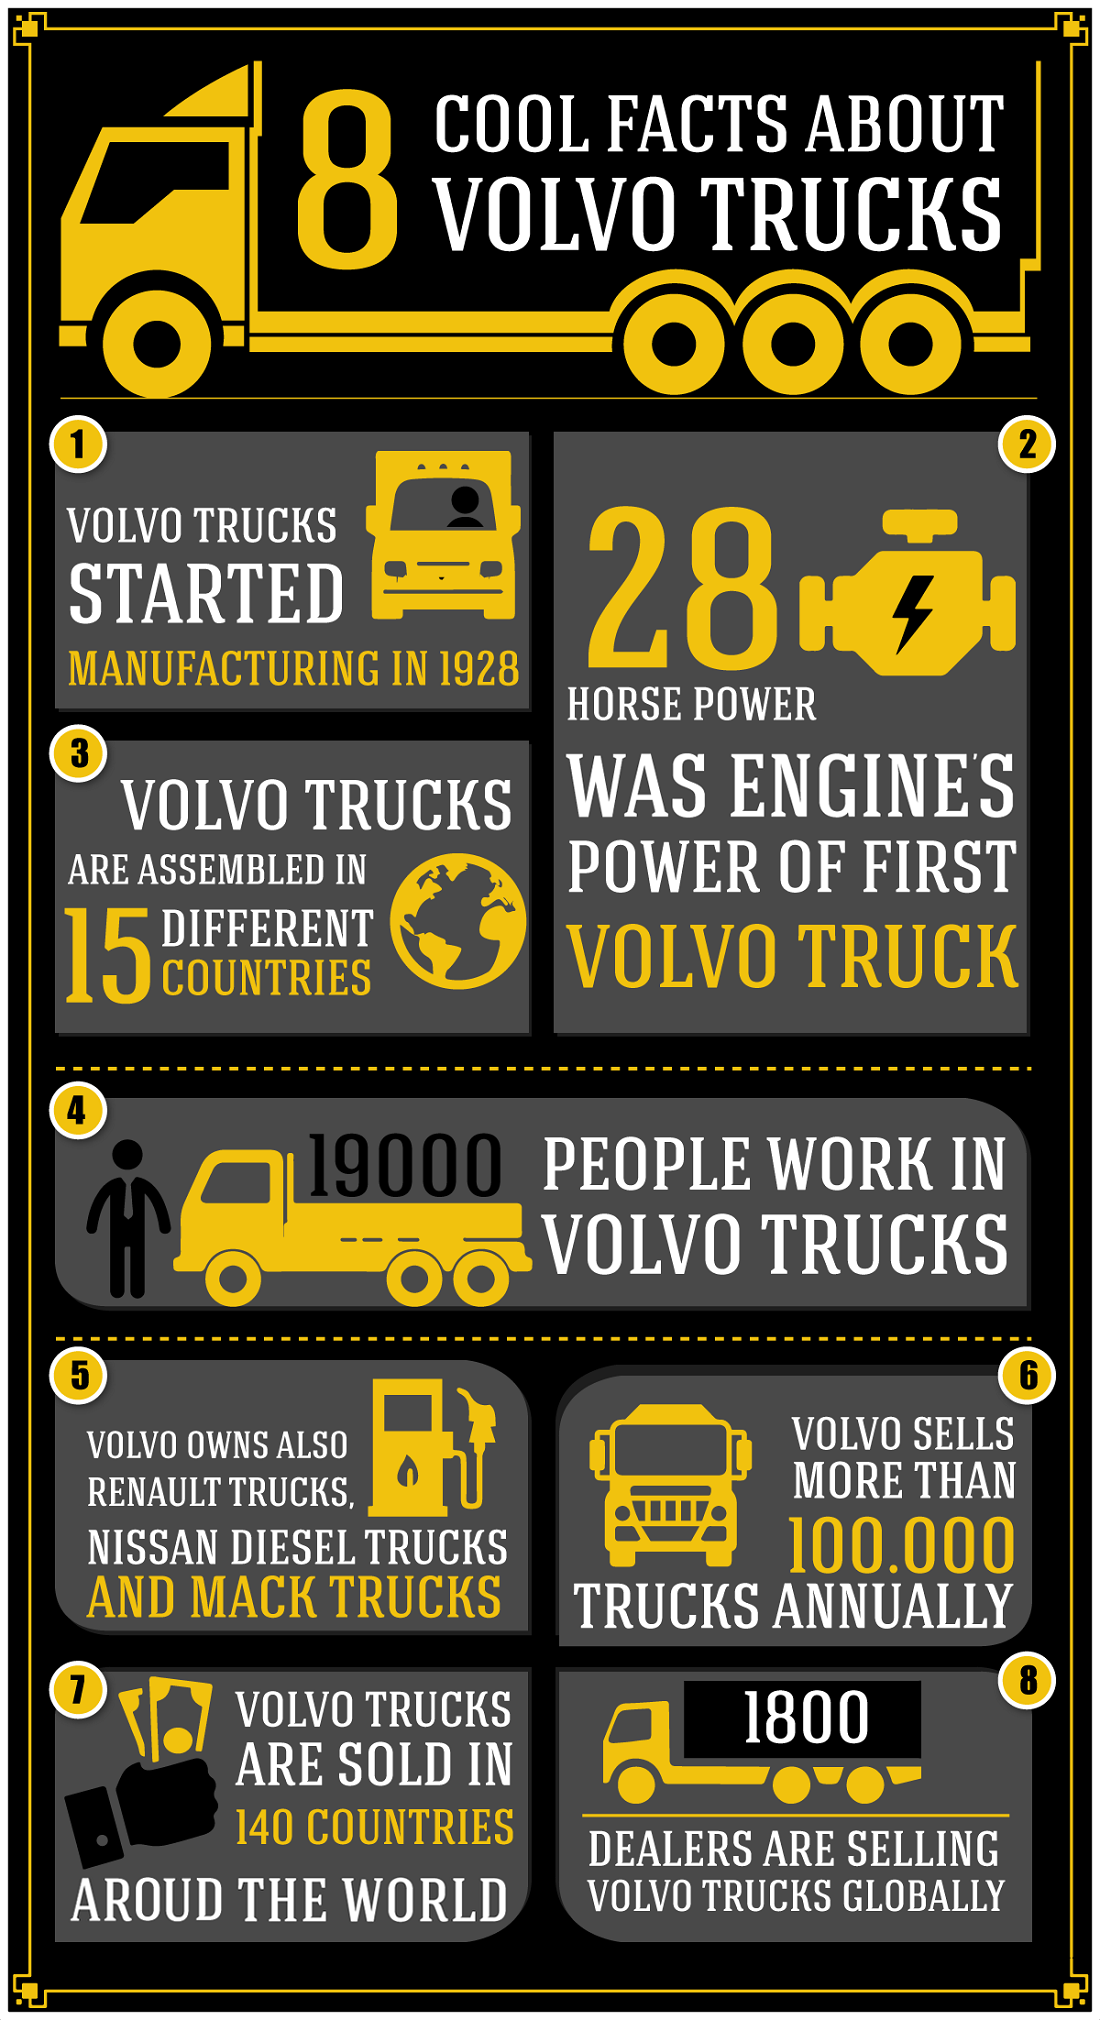 INFOGRAPHIC: 8 Cool Facts About Volvo Trucks